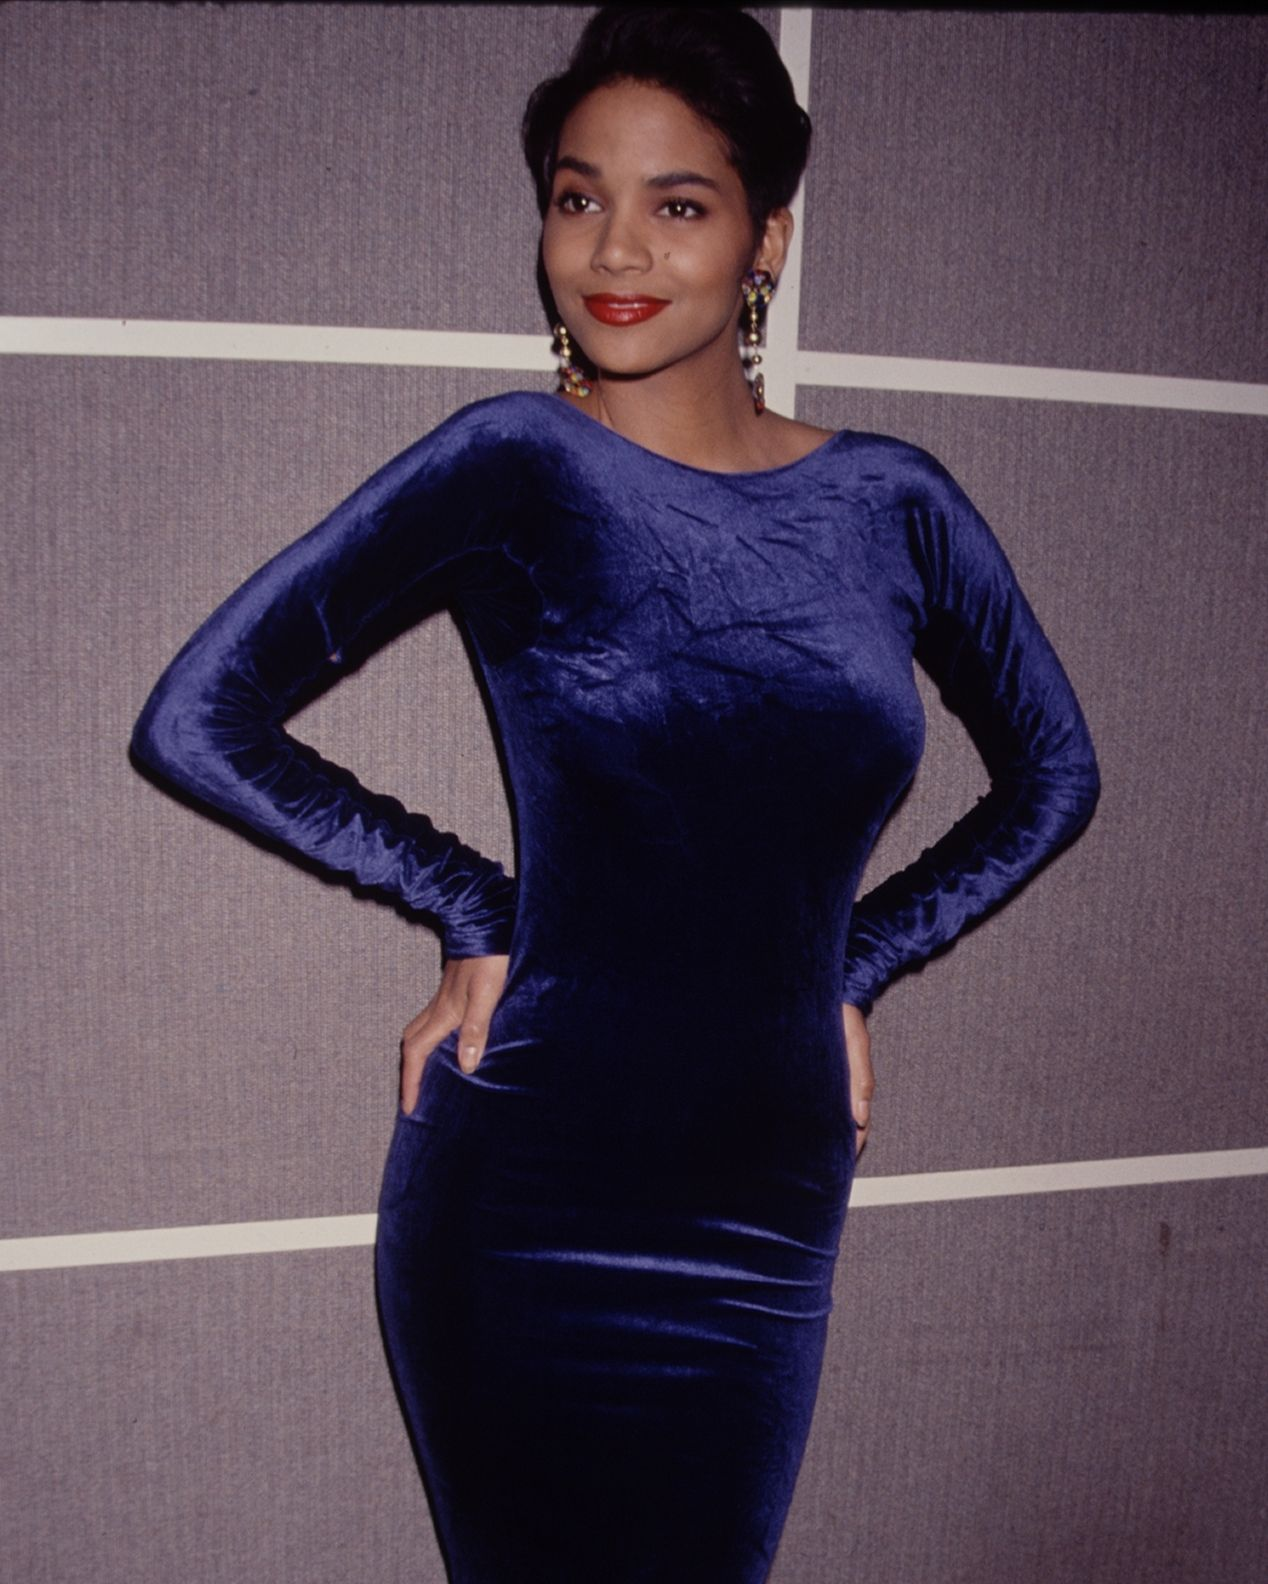 Red Carpet Beauty Halle almost looks unrecognizable in this 1990 photo! The velvet, high-neck dress shows off her curves, and the simple makeup keeps the focus on her knockout body.